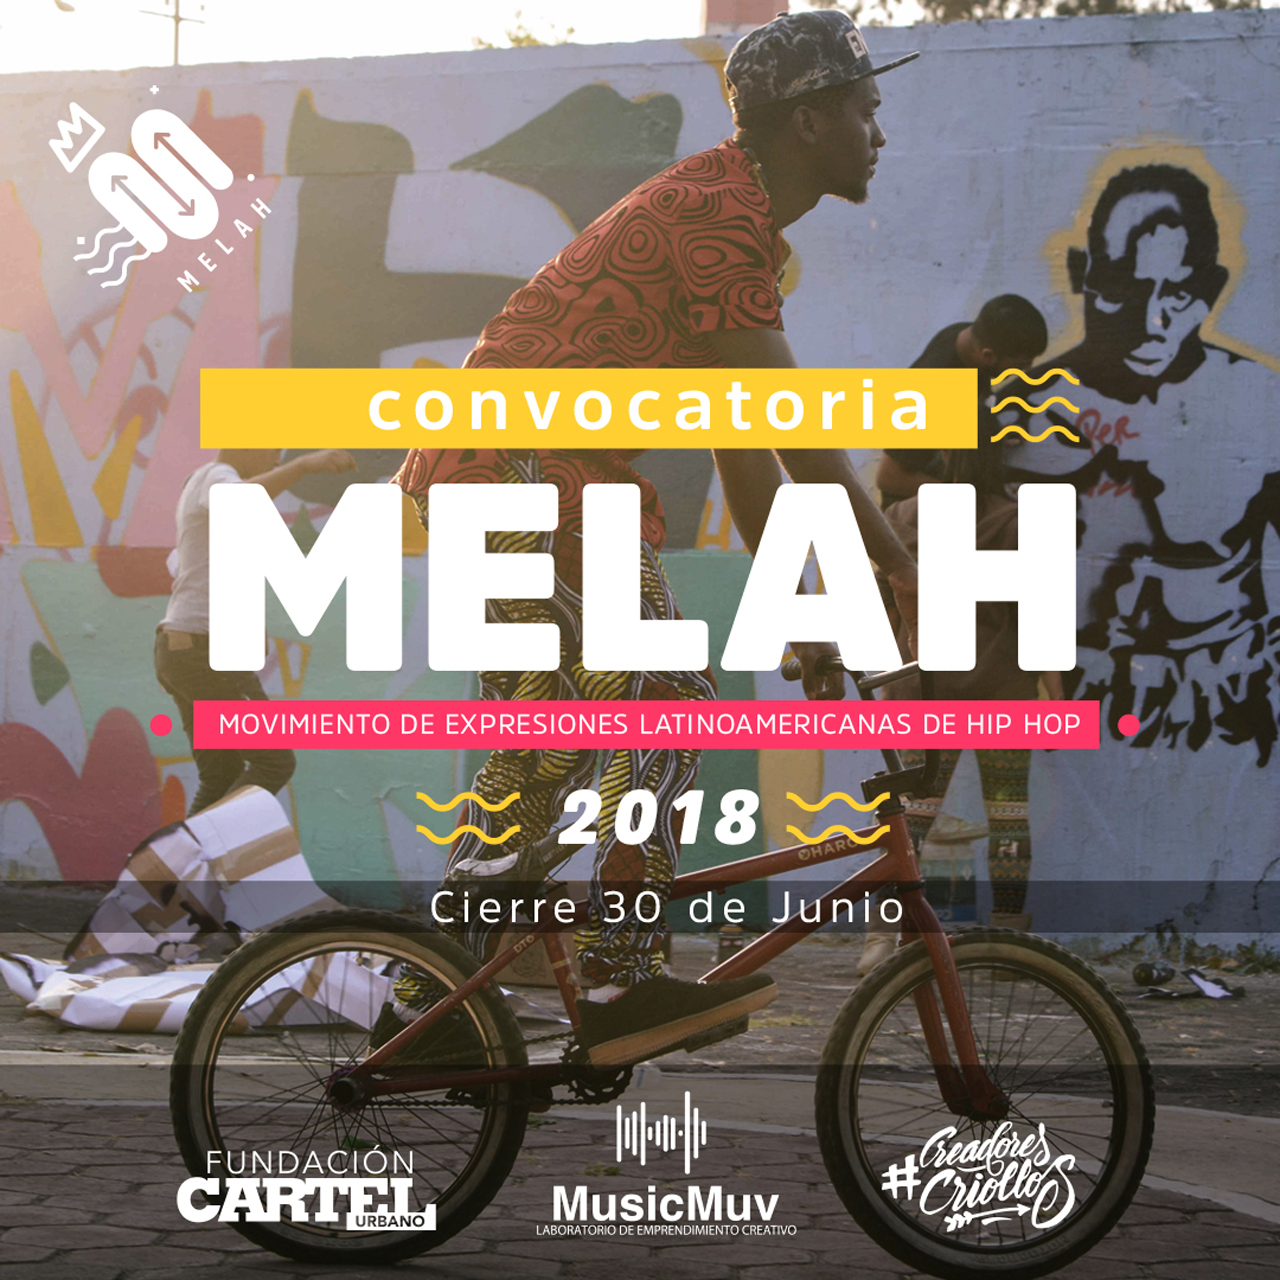 melah-convocatoria-flyer.jpg